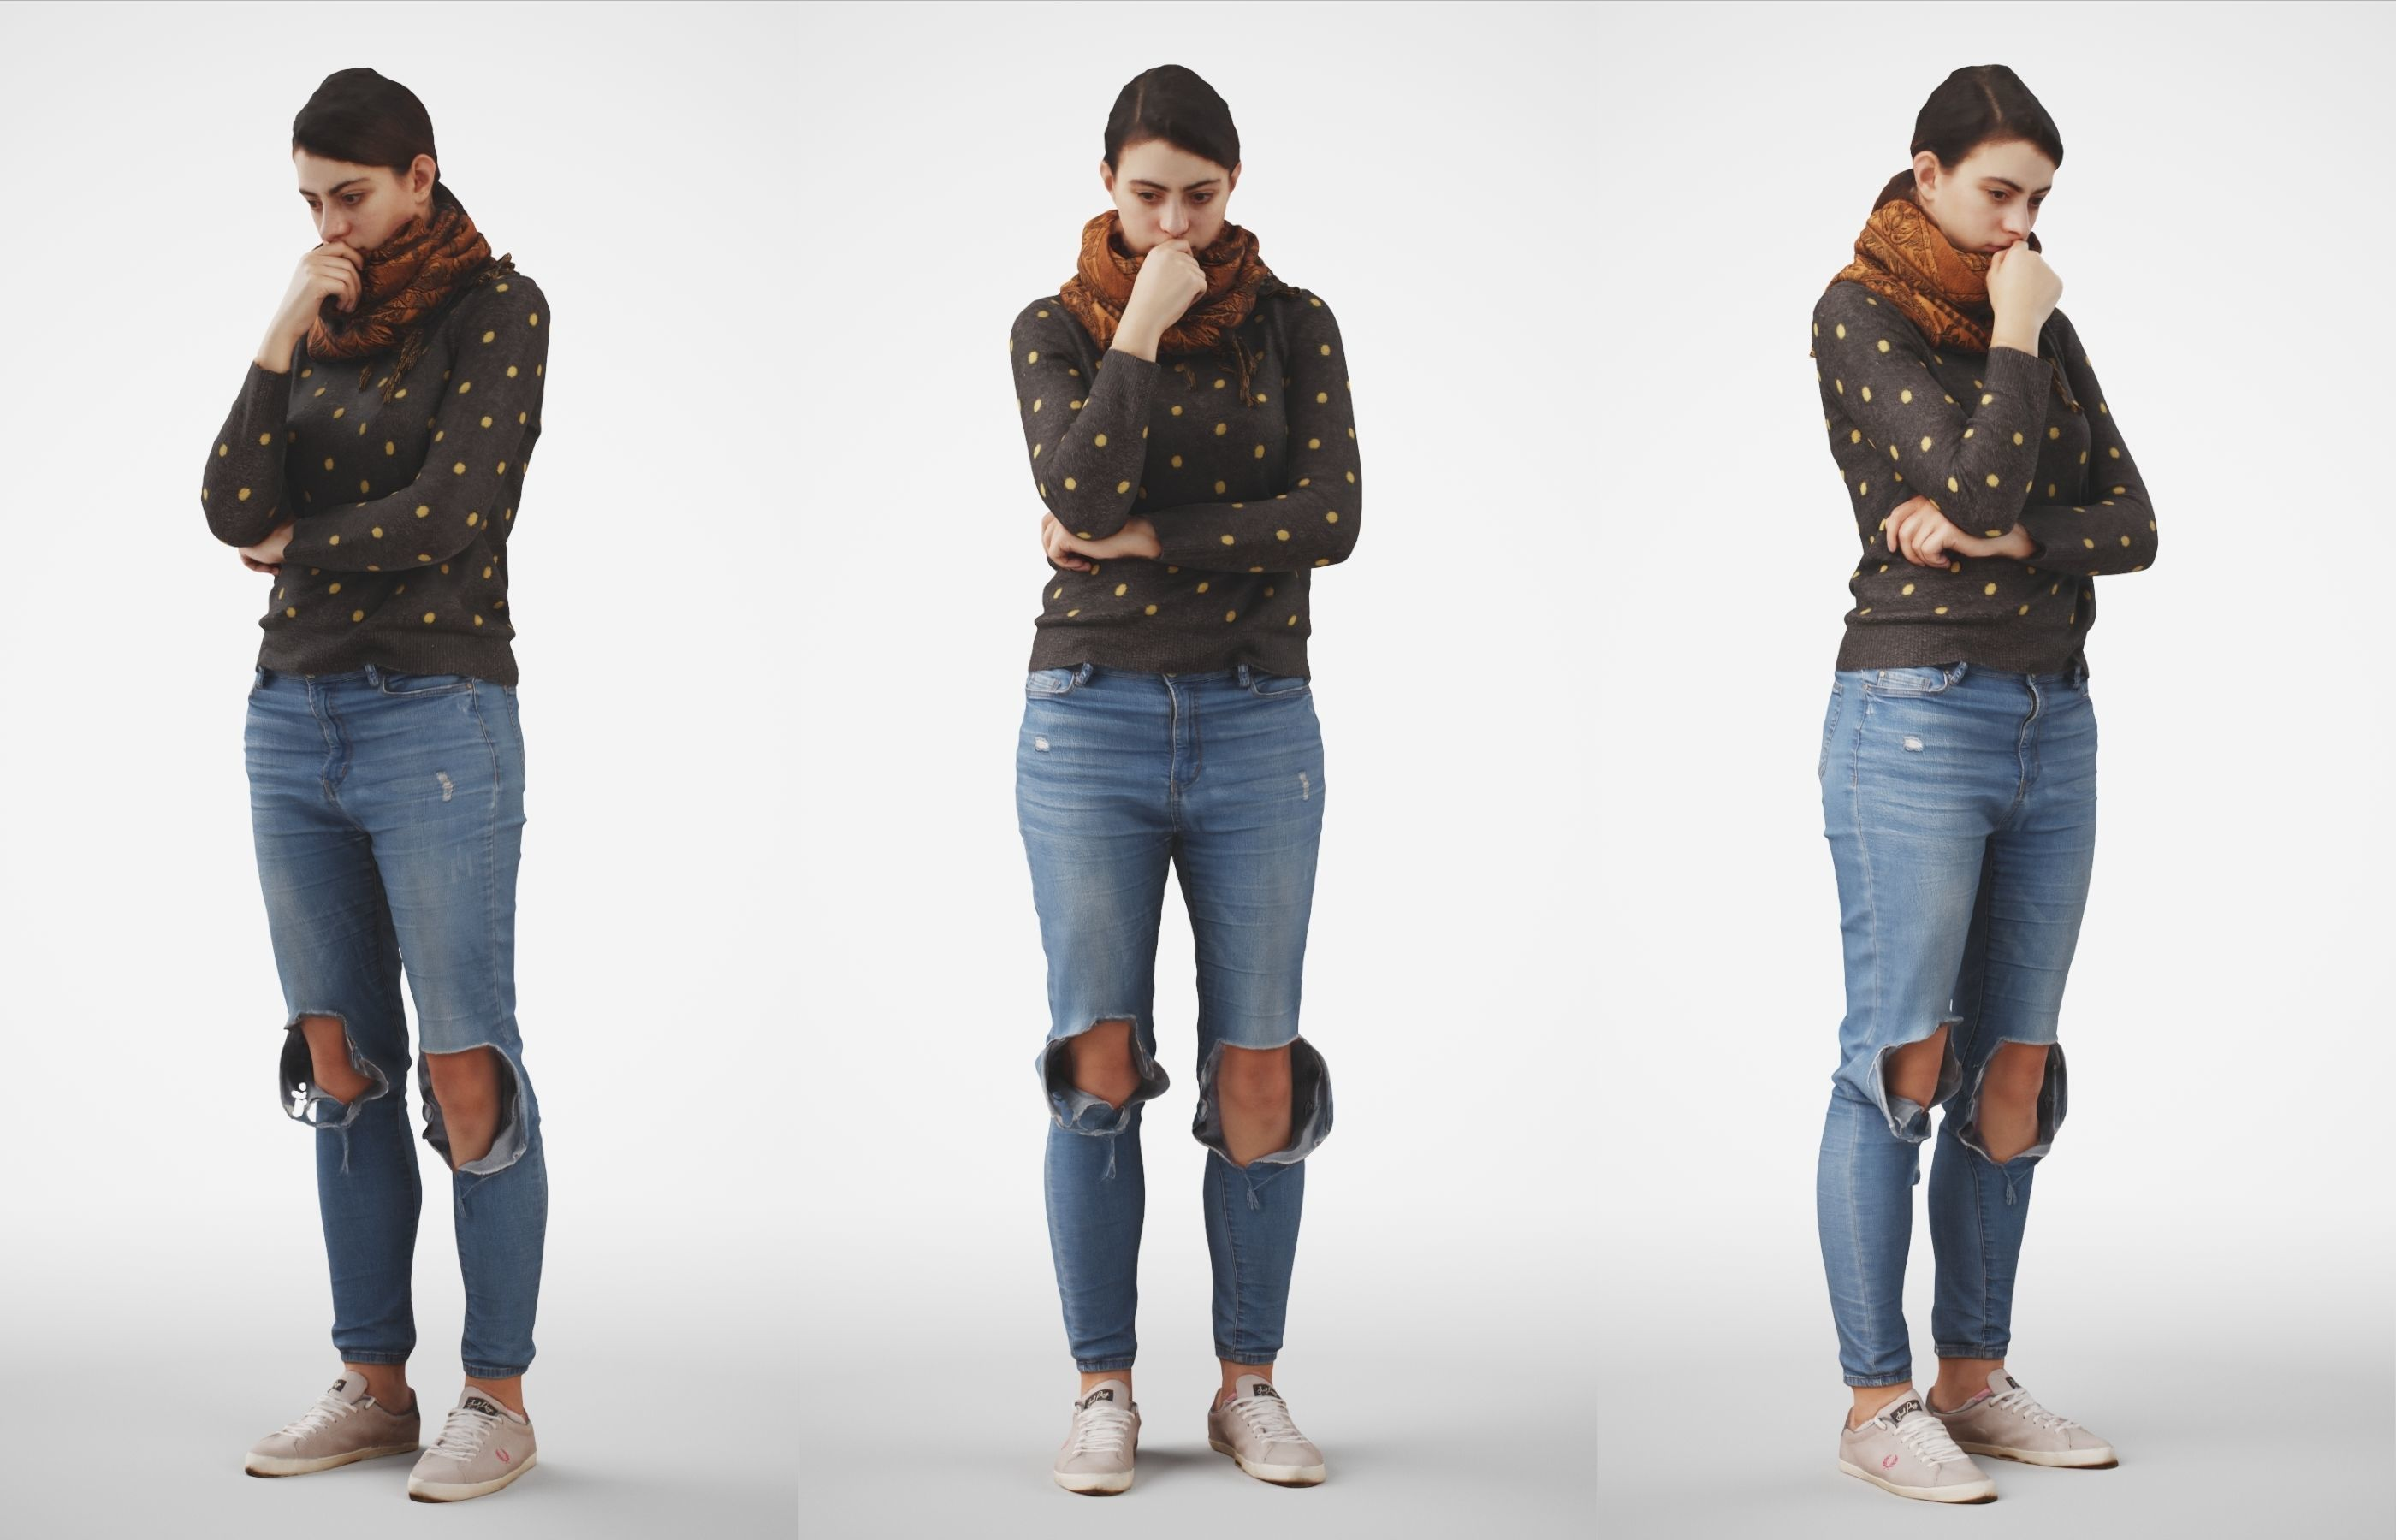 Rosanna 03 Woman posed standing in casual jeans outfit